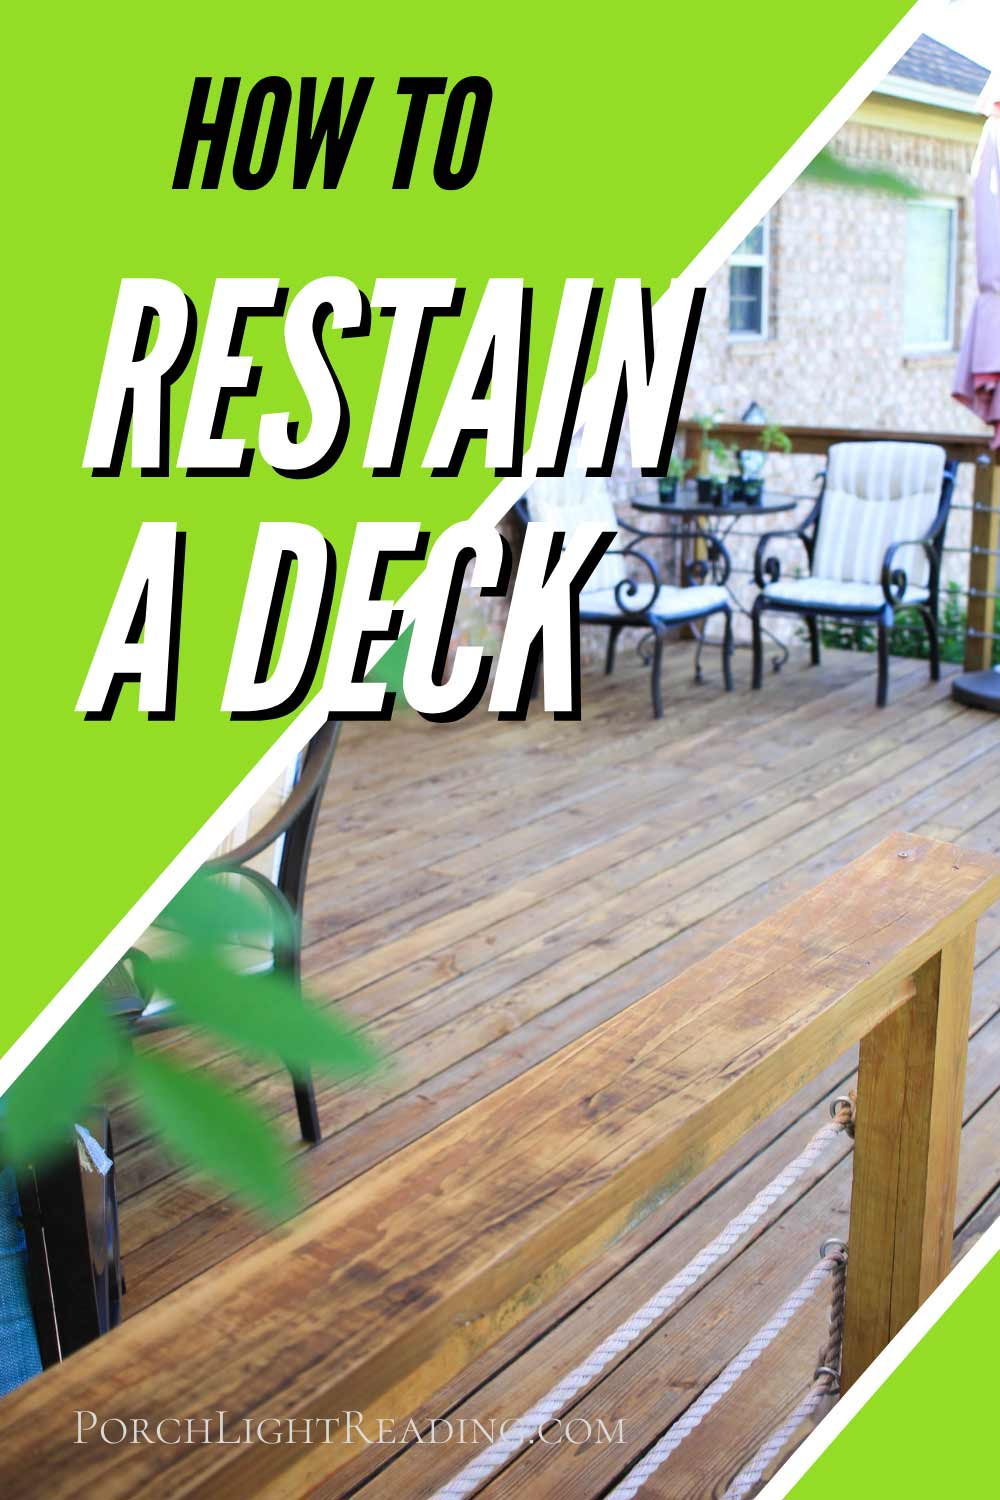 How to restain a deck